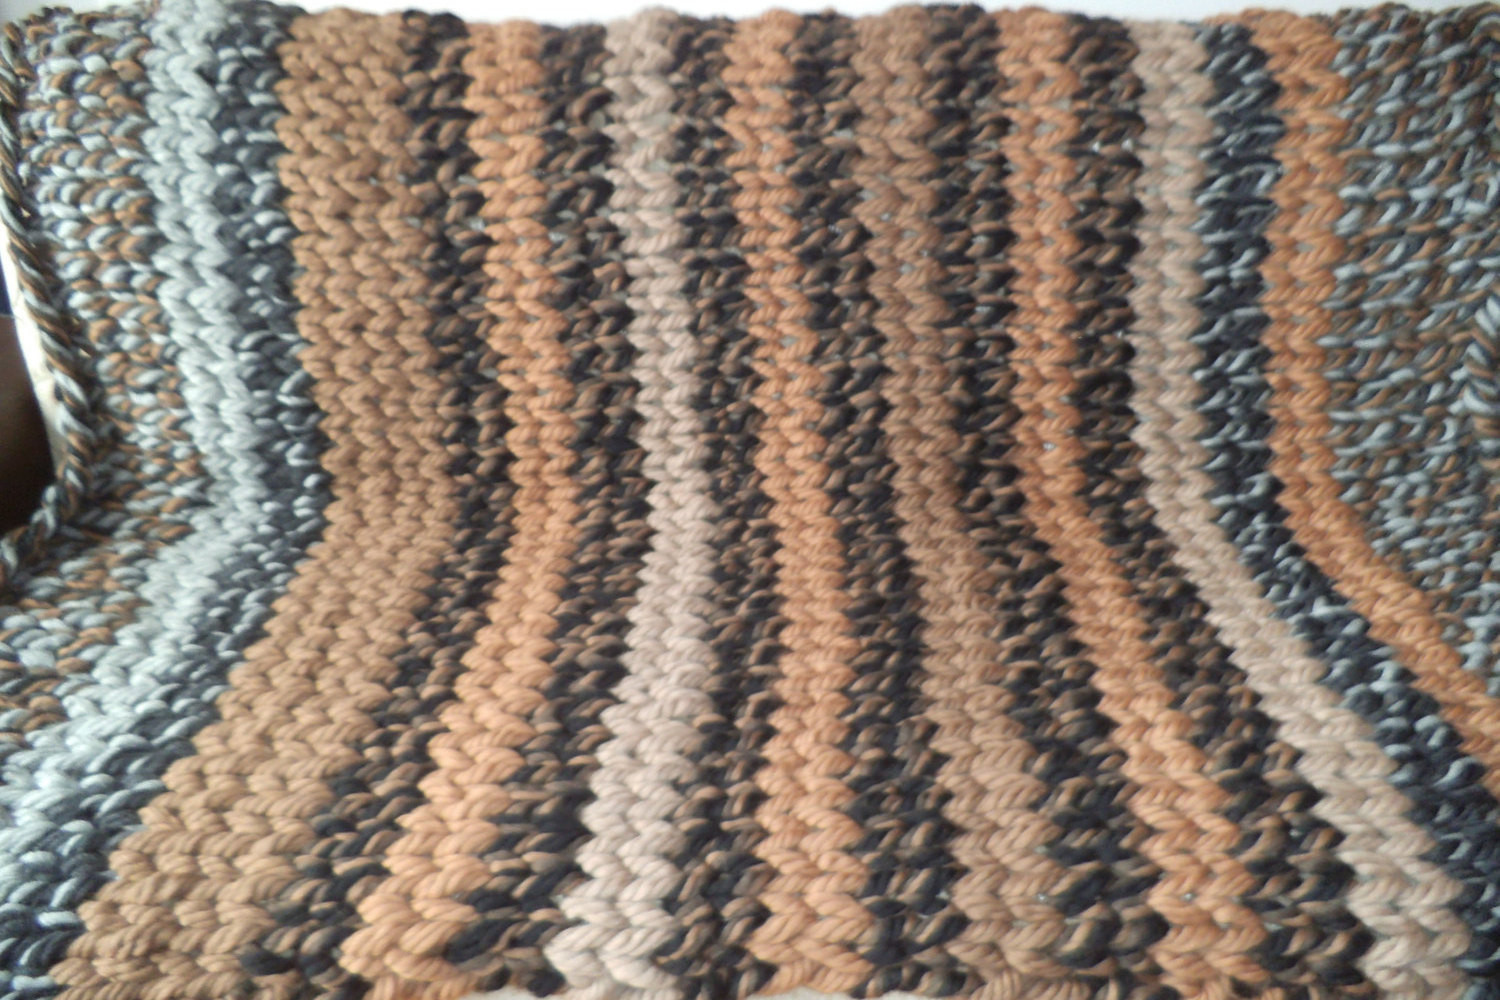 Chunky Knit Throw New Super Chunky Knit Blanket Bulky Throw Hand Knit Blanket Of Superb 50 Pics Chunky Knit Throw